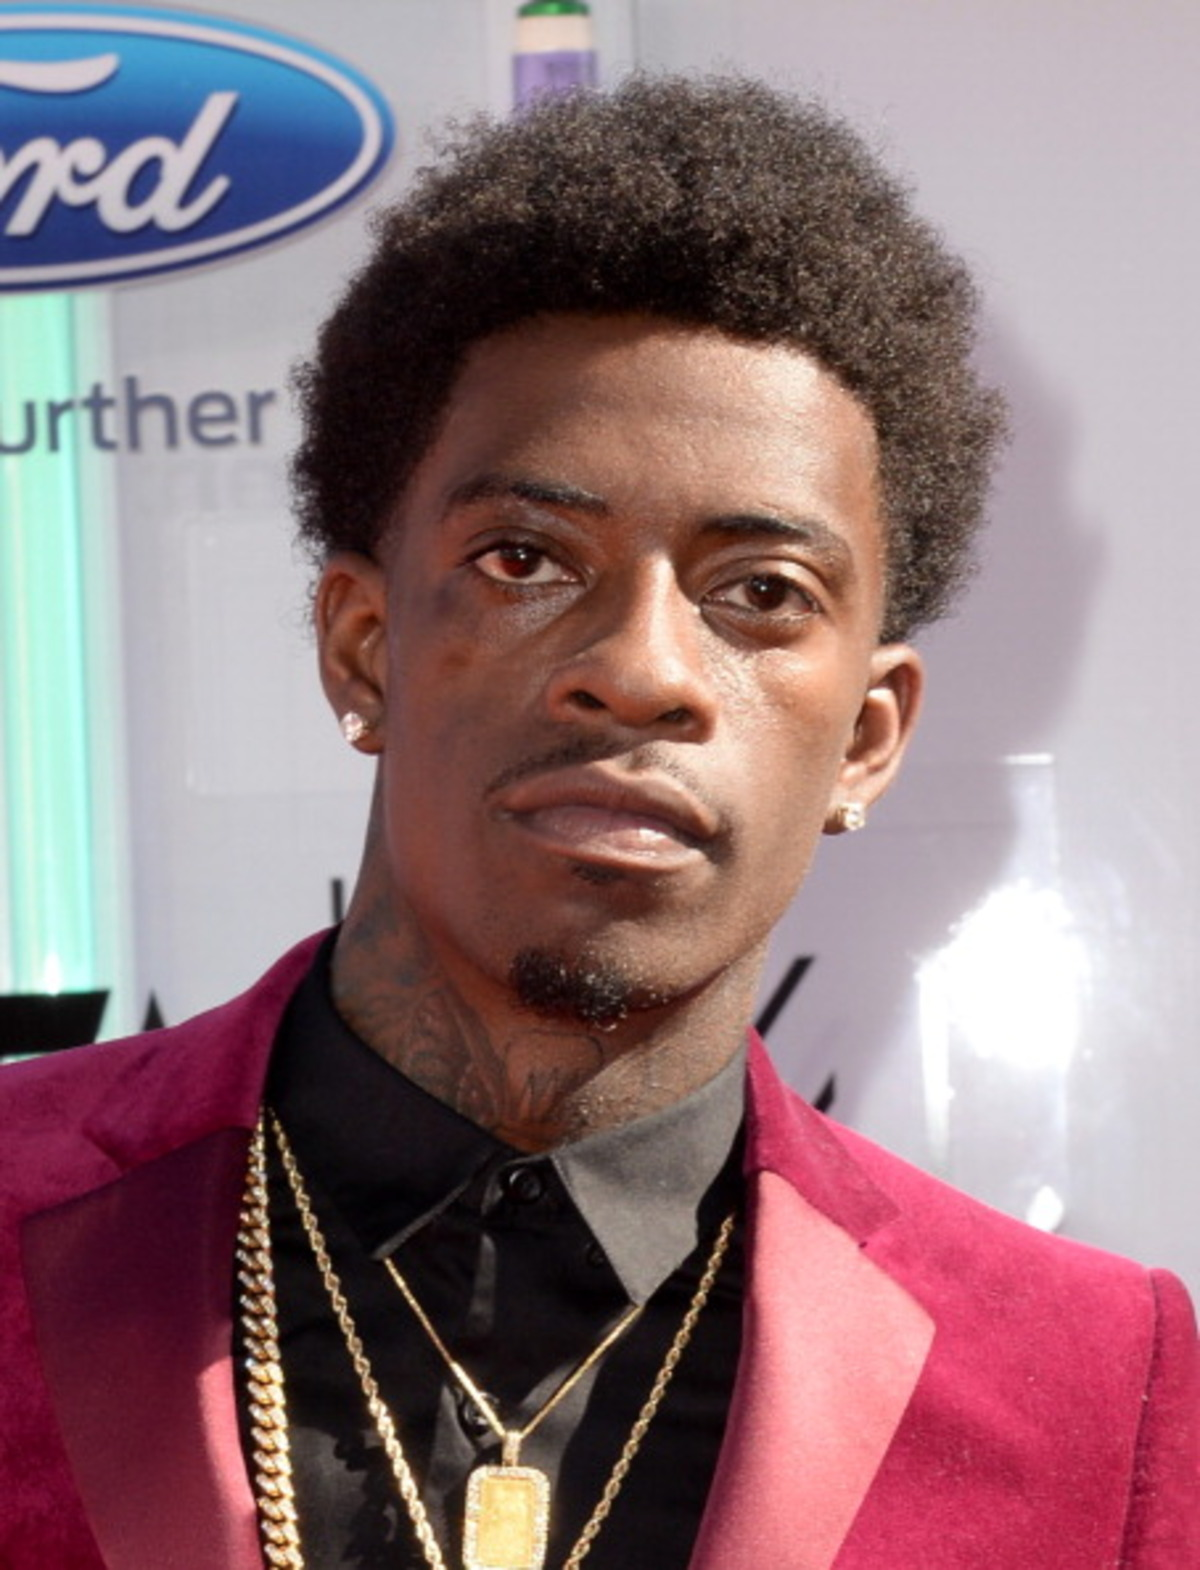 who is rich homie quan